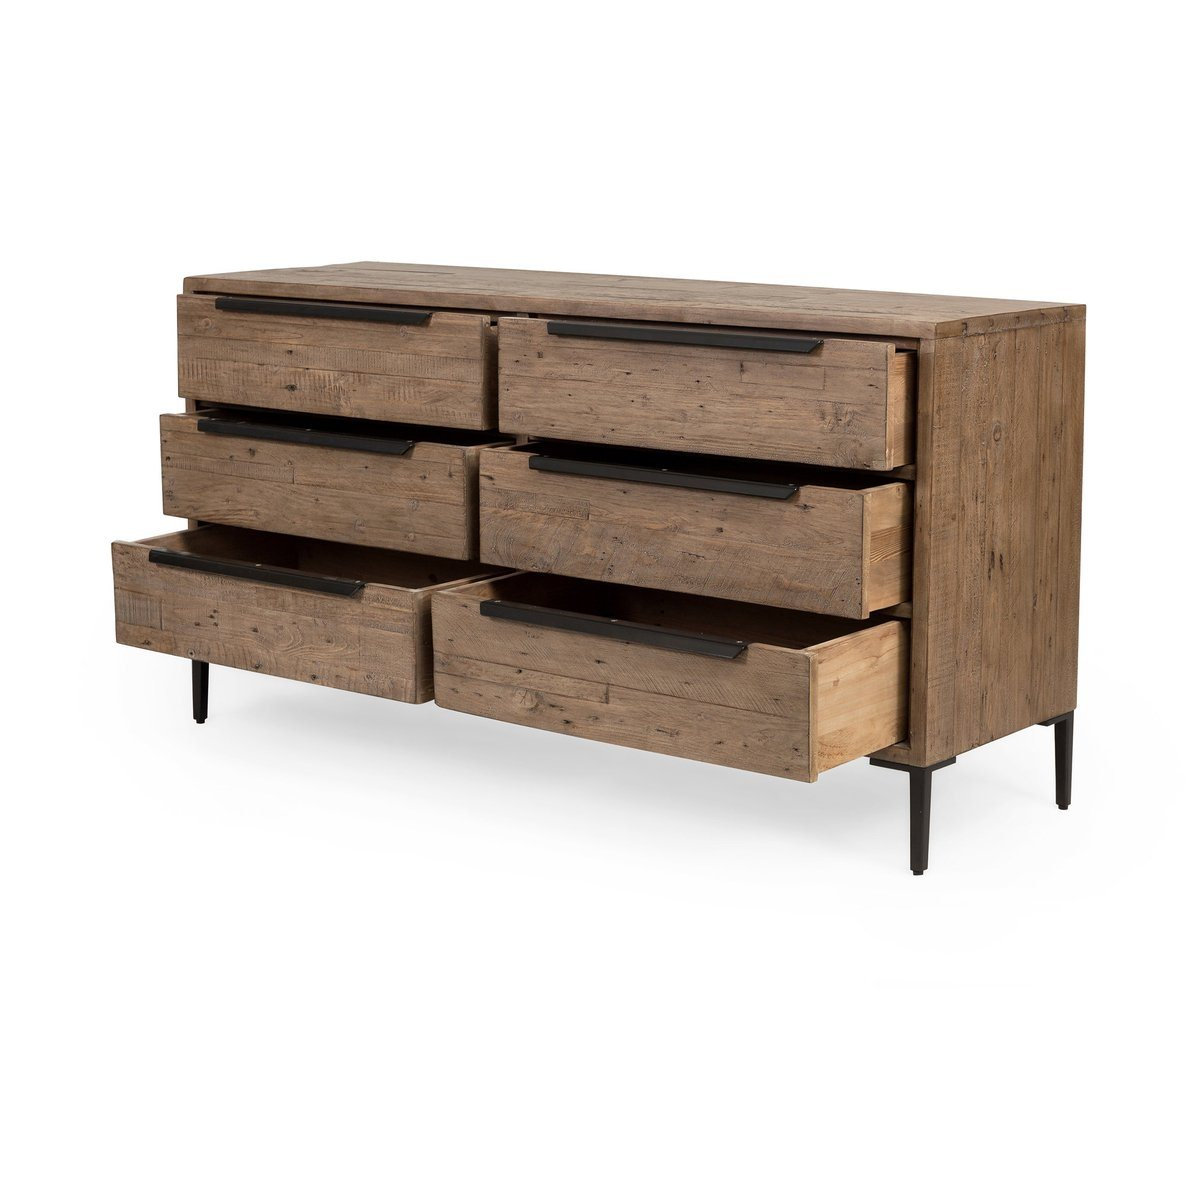 DRAWER DRESSER - RUSTIC SUNDRIED ASH - Showhome Furniture